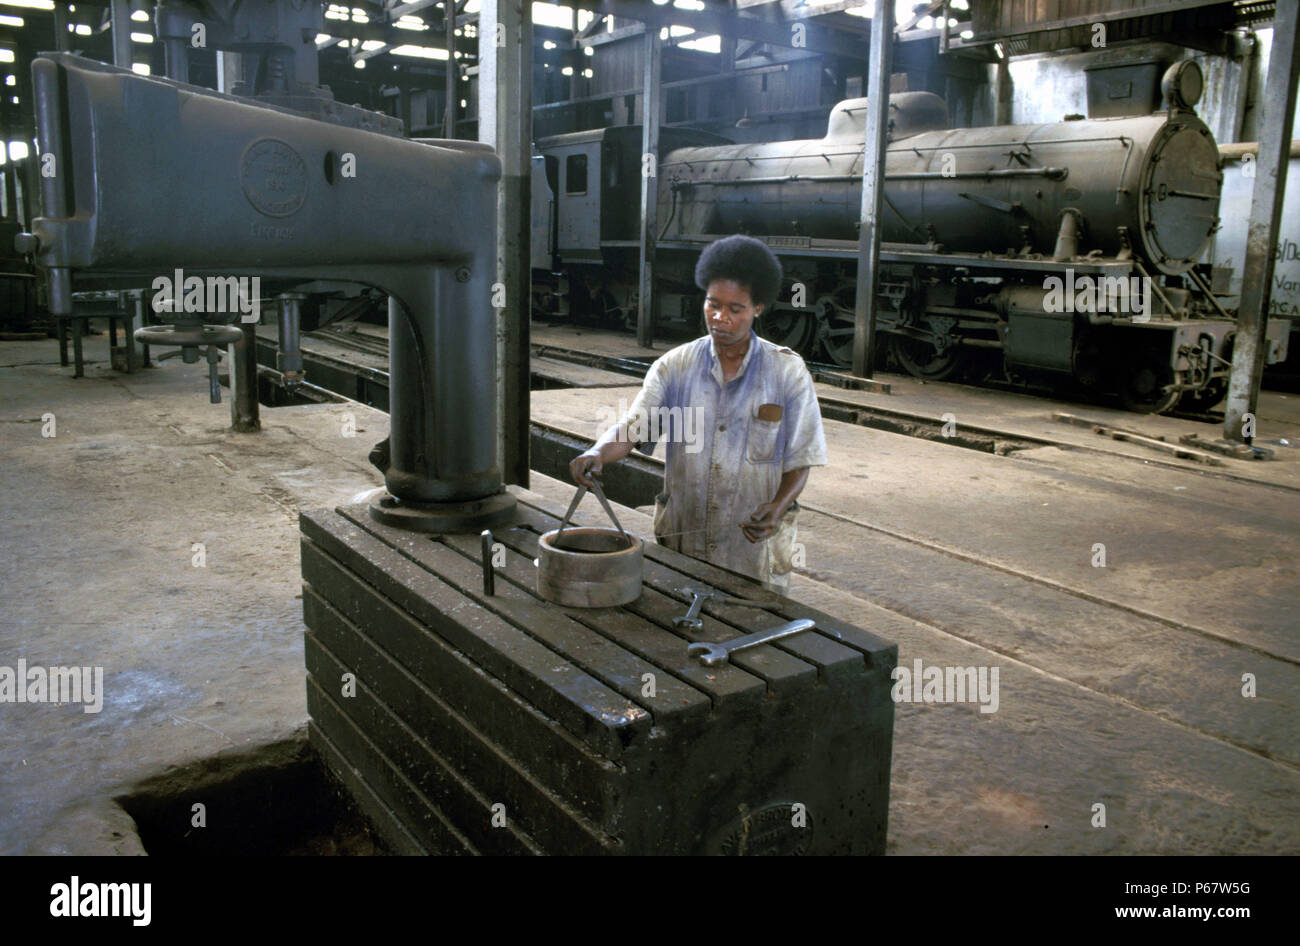 The Craven cutting machine at Accra Steam sheds. Charlotte Sowah takes measurements as a Vulcan Foundry 4-8-2 complete with Giest chimney stands in th - Stock Image